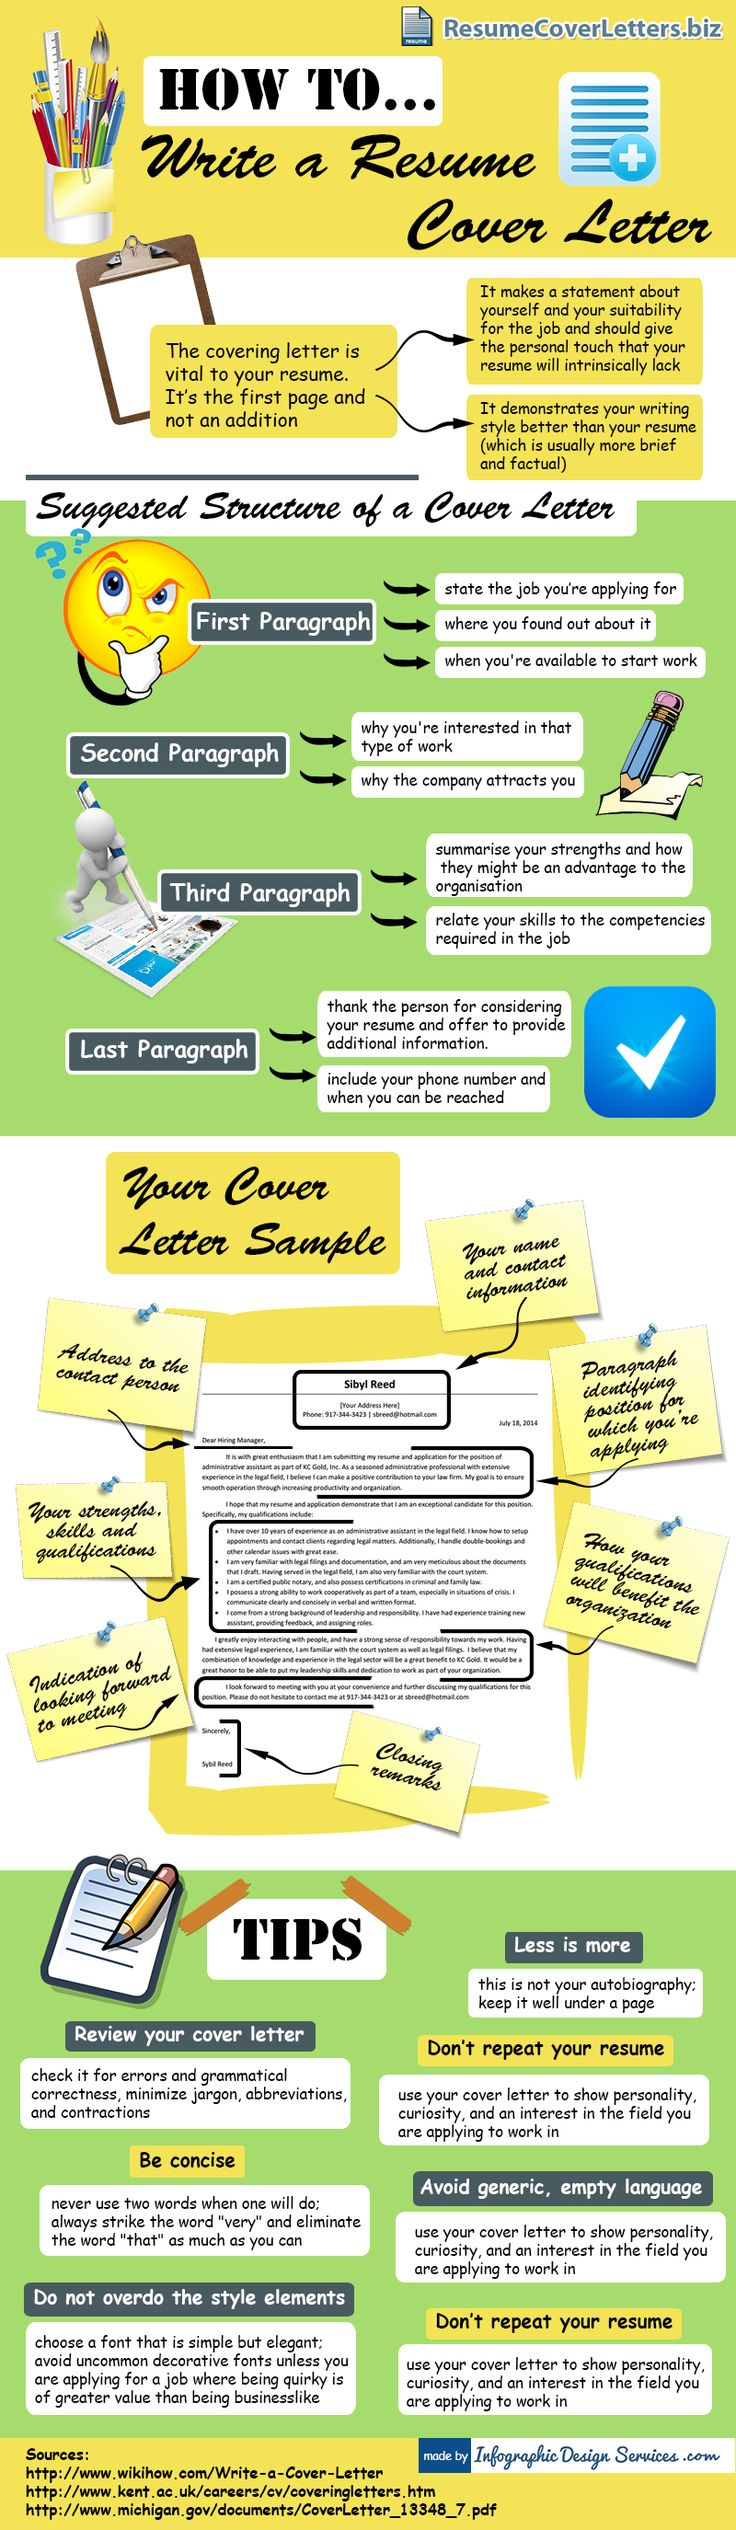 resume cover letter writing tips visually